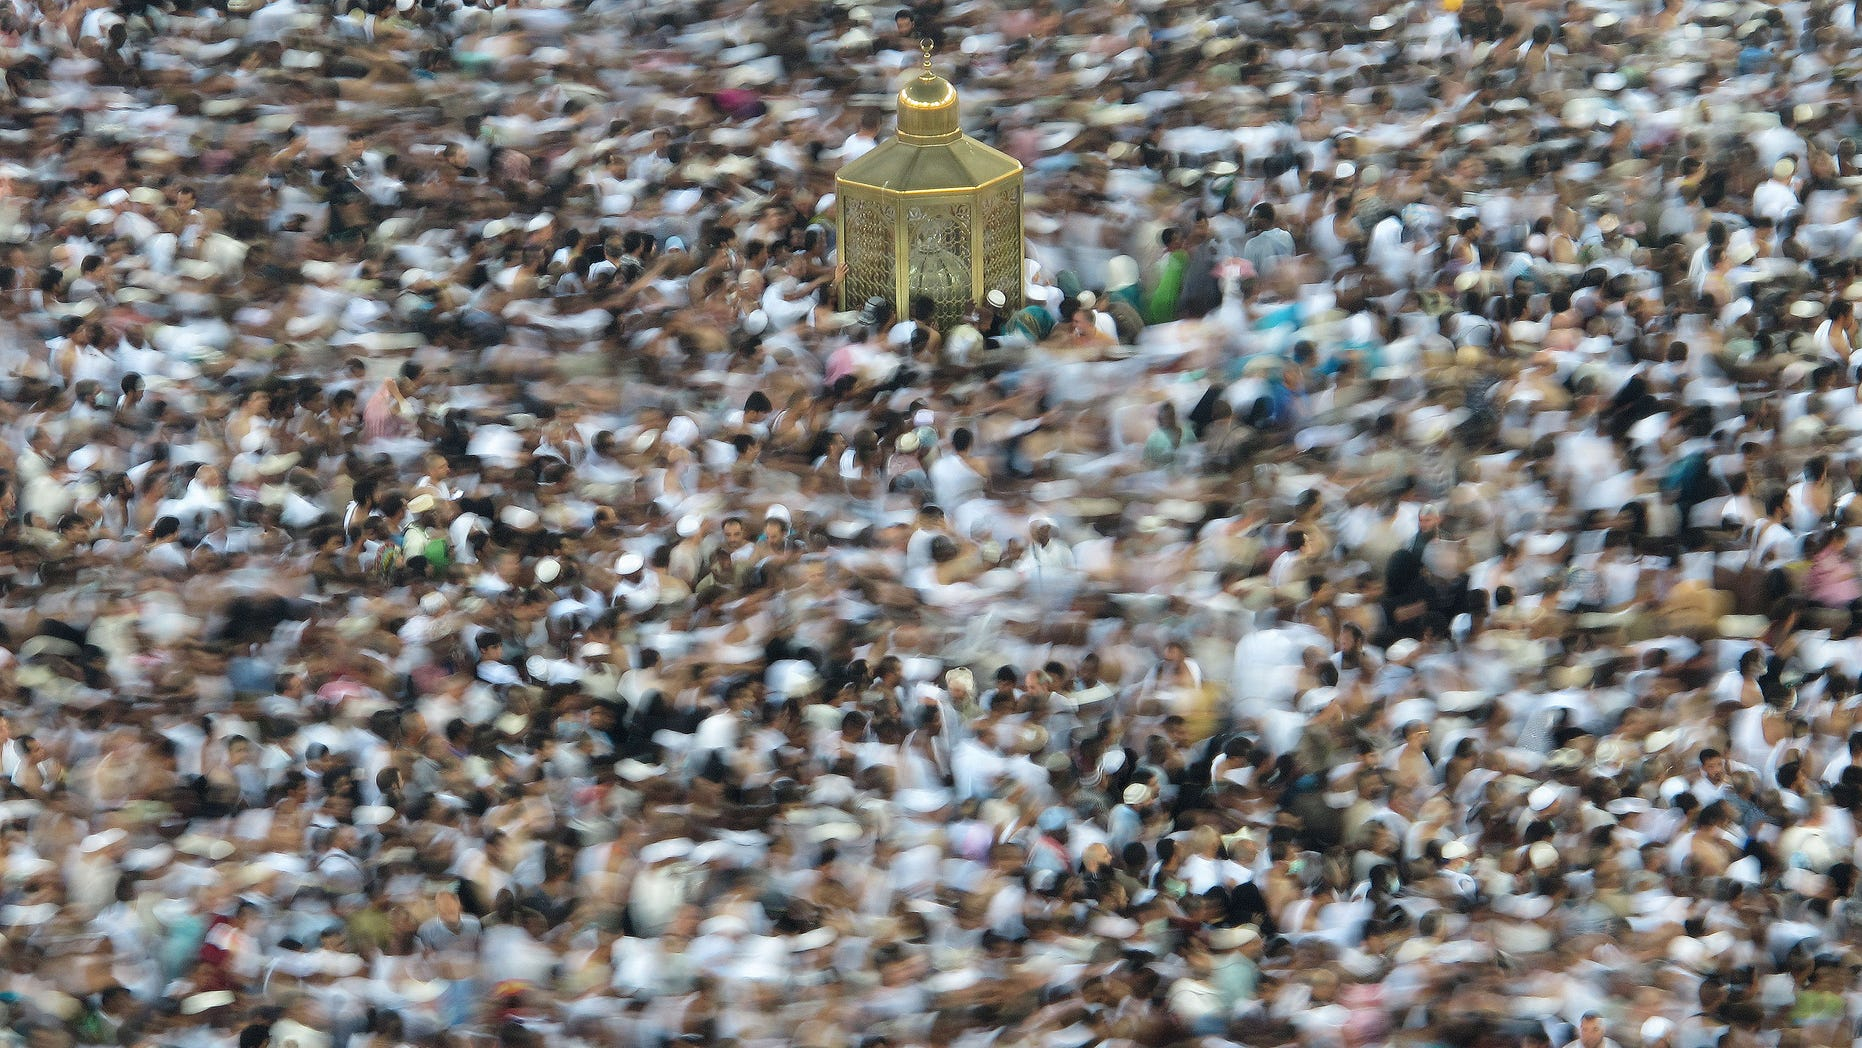 Oct. 23, 2012: Muslim pilgrims circle the Kaaba as pray inside the Grand mosque in the holy city of Mecca, Saudi Arabia.